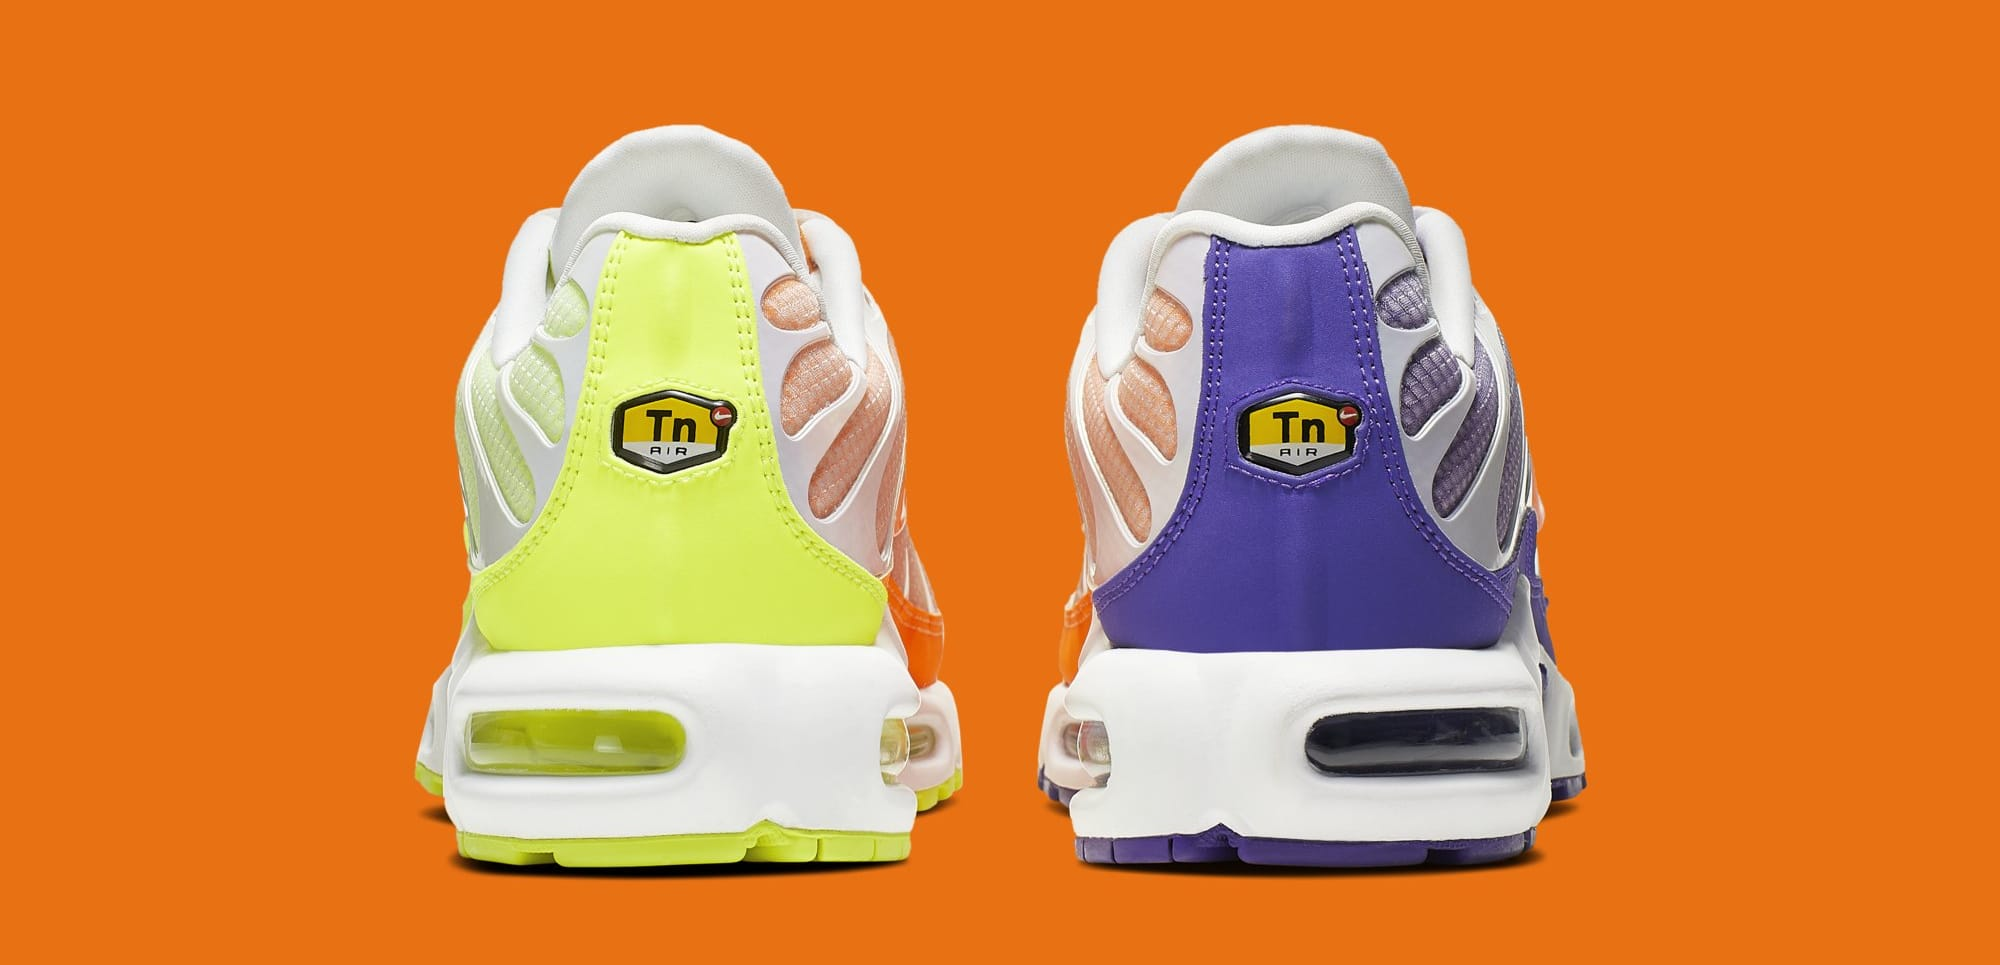 Nike Air Max Plus 'Color Flip/White' CI5925-531 (Heel)